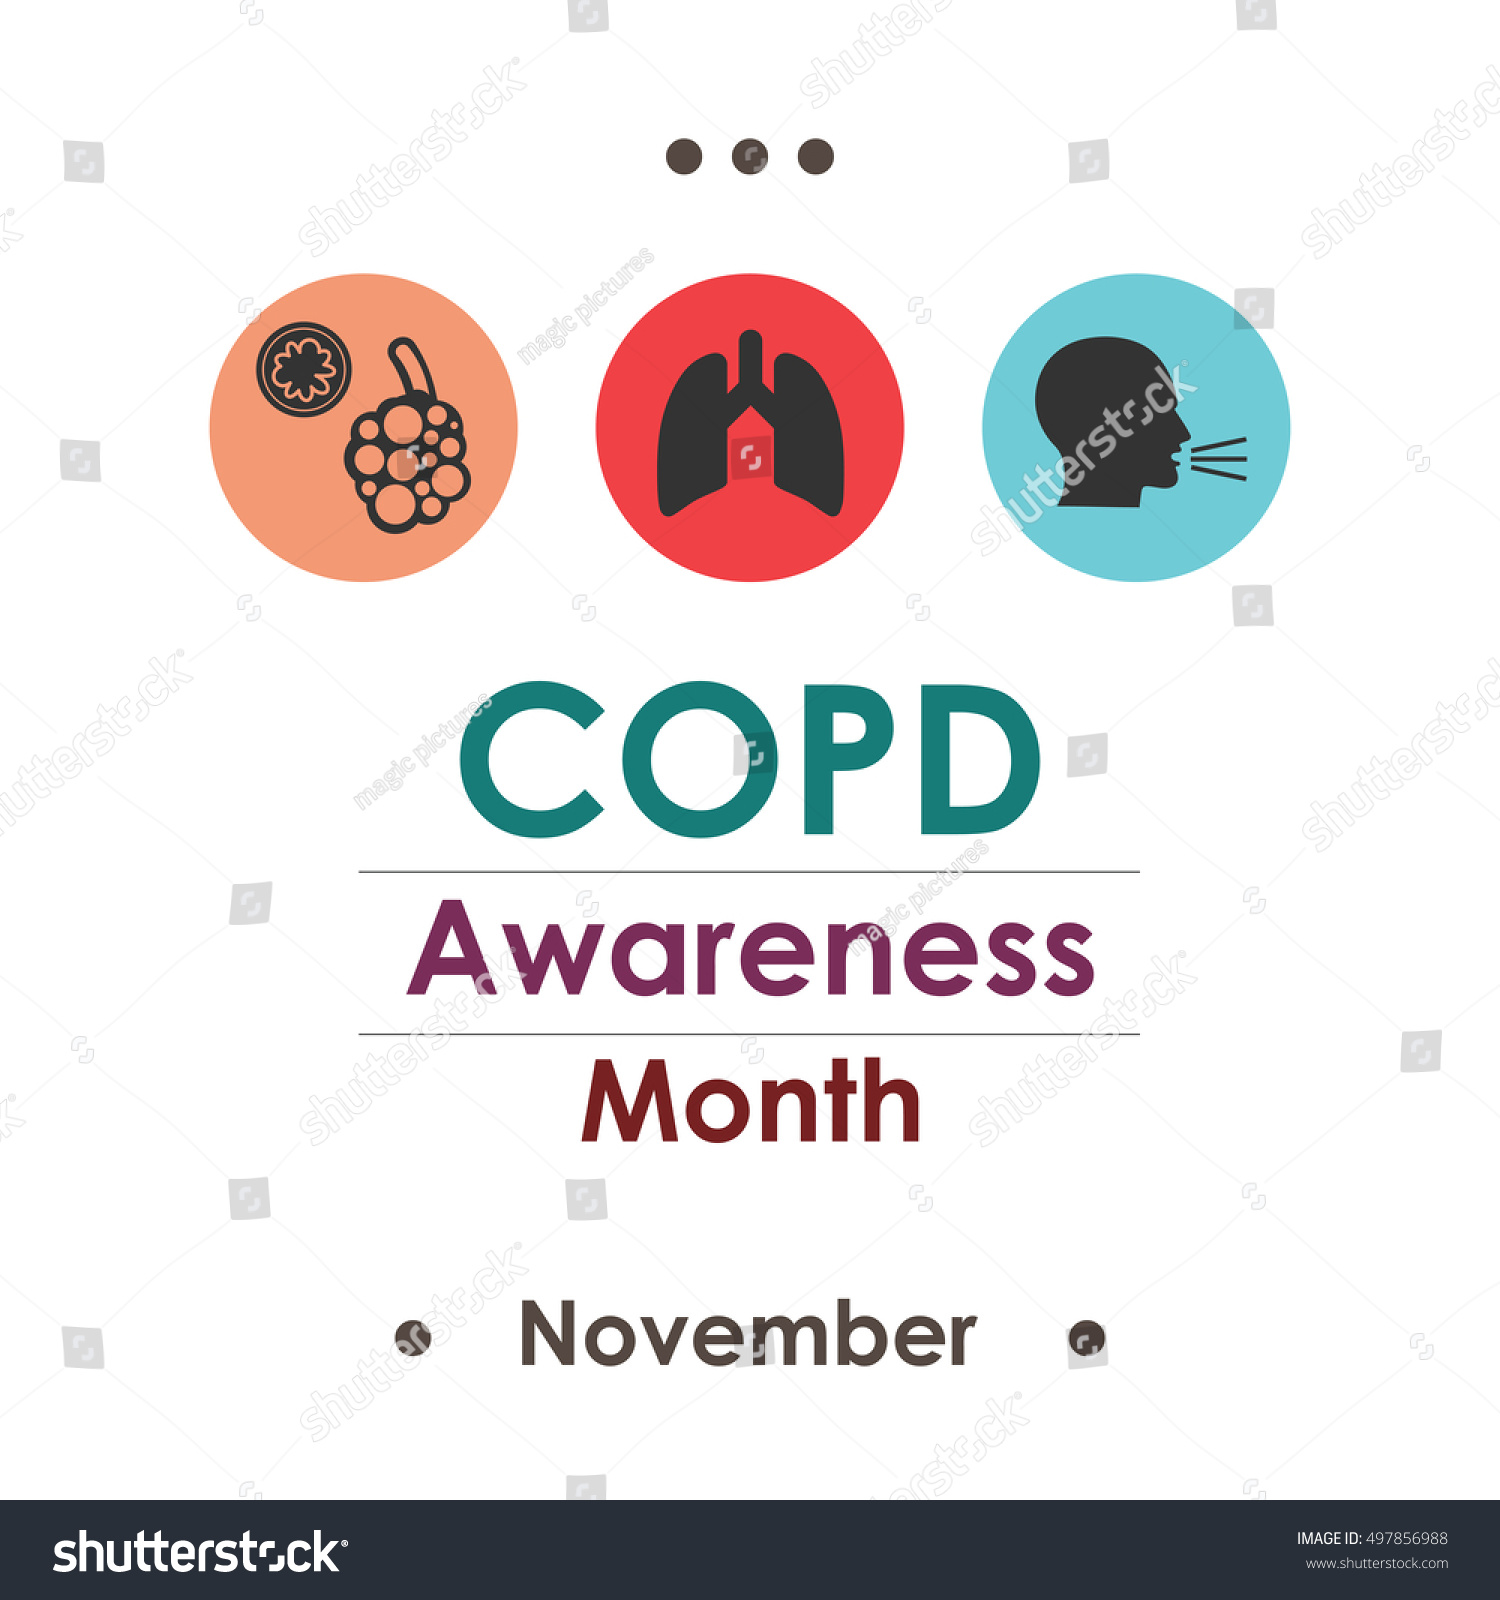 Image result for COPD month 2017